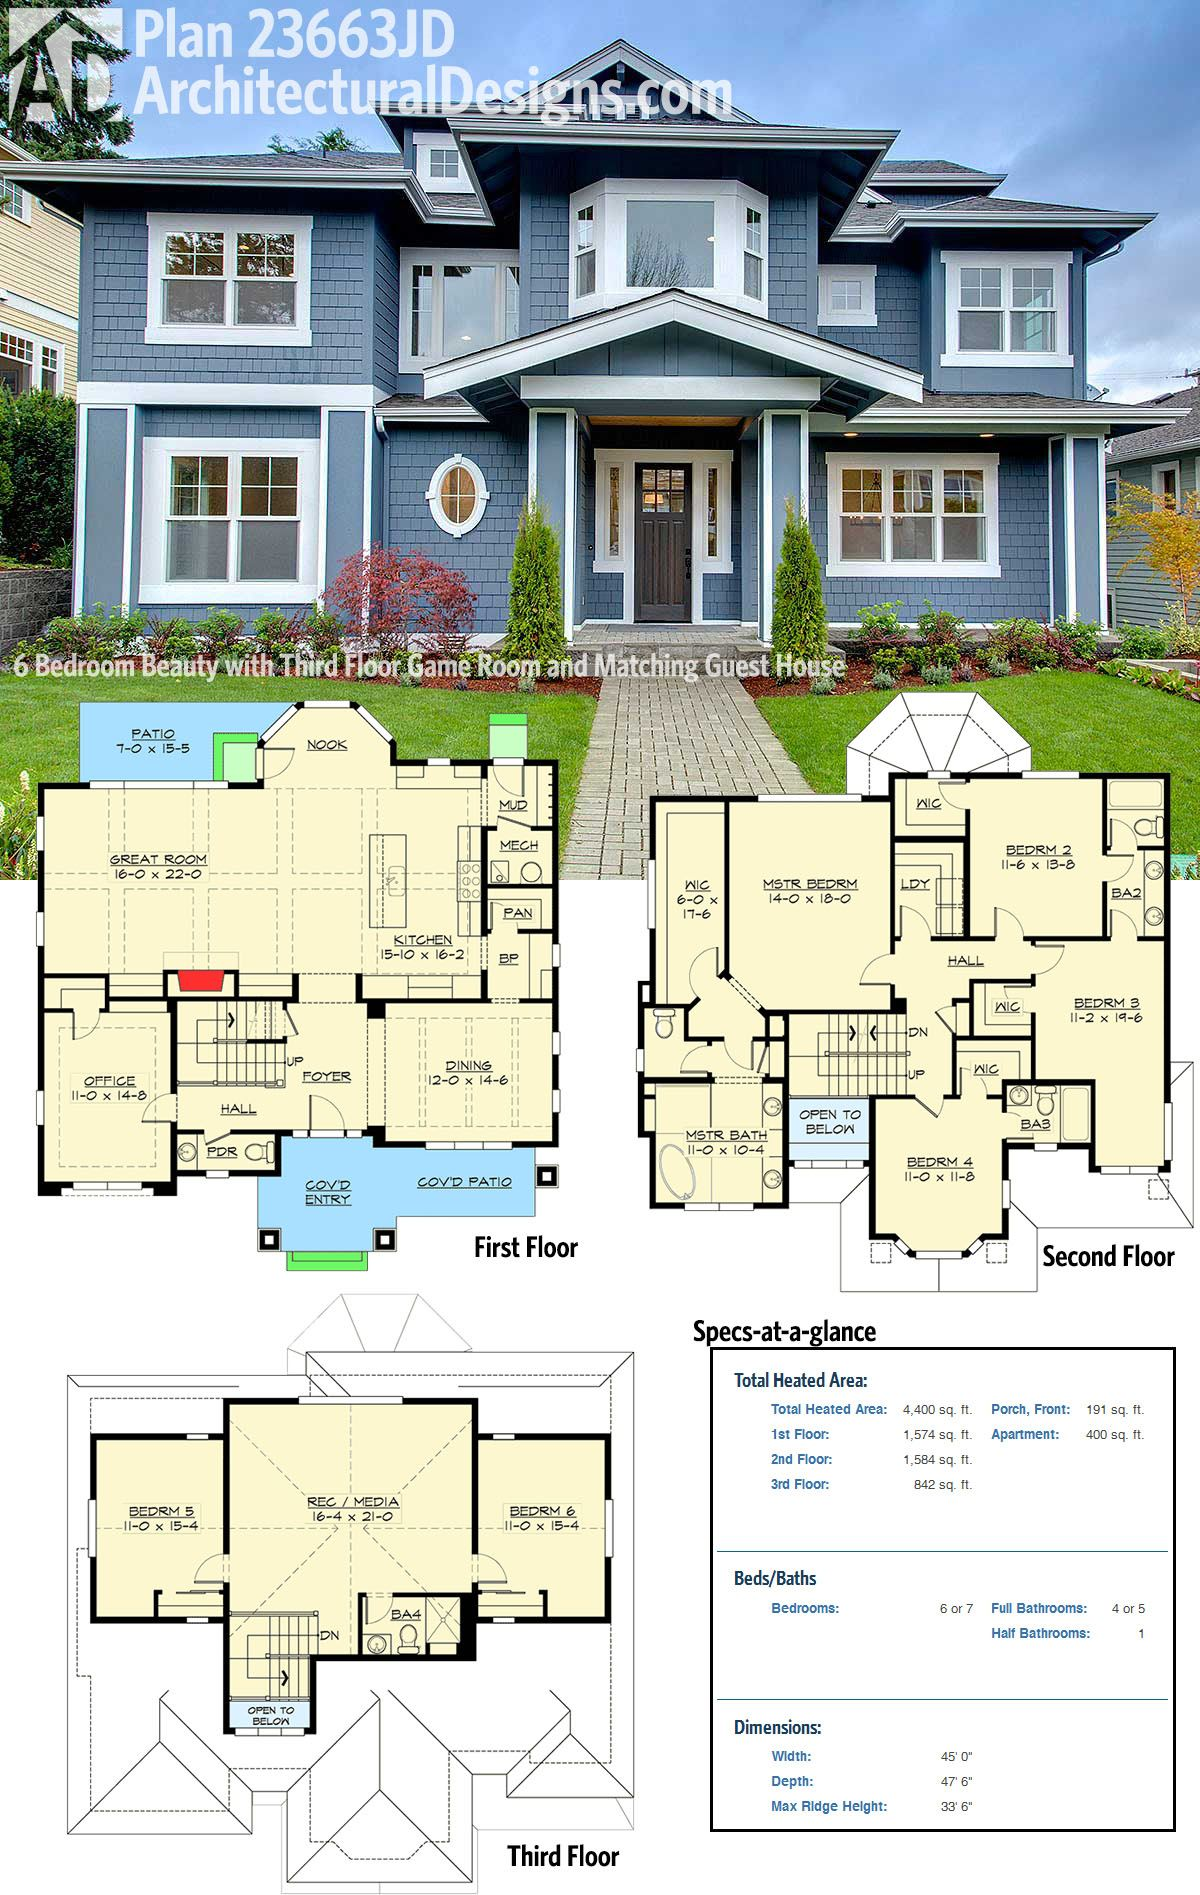 Plan 23663jd 6 bedroom beauty with third floor game room for House plans with media room